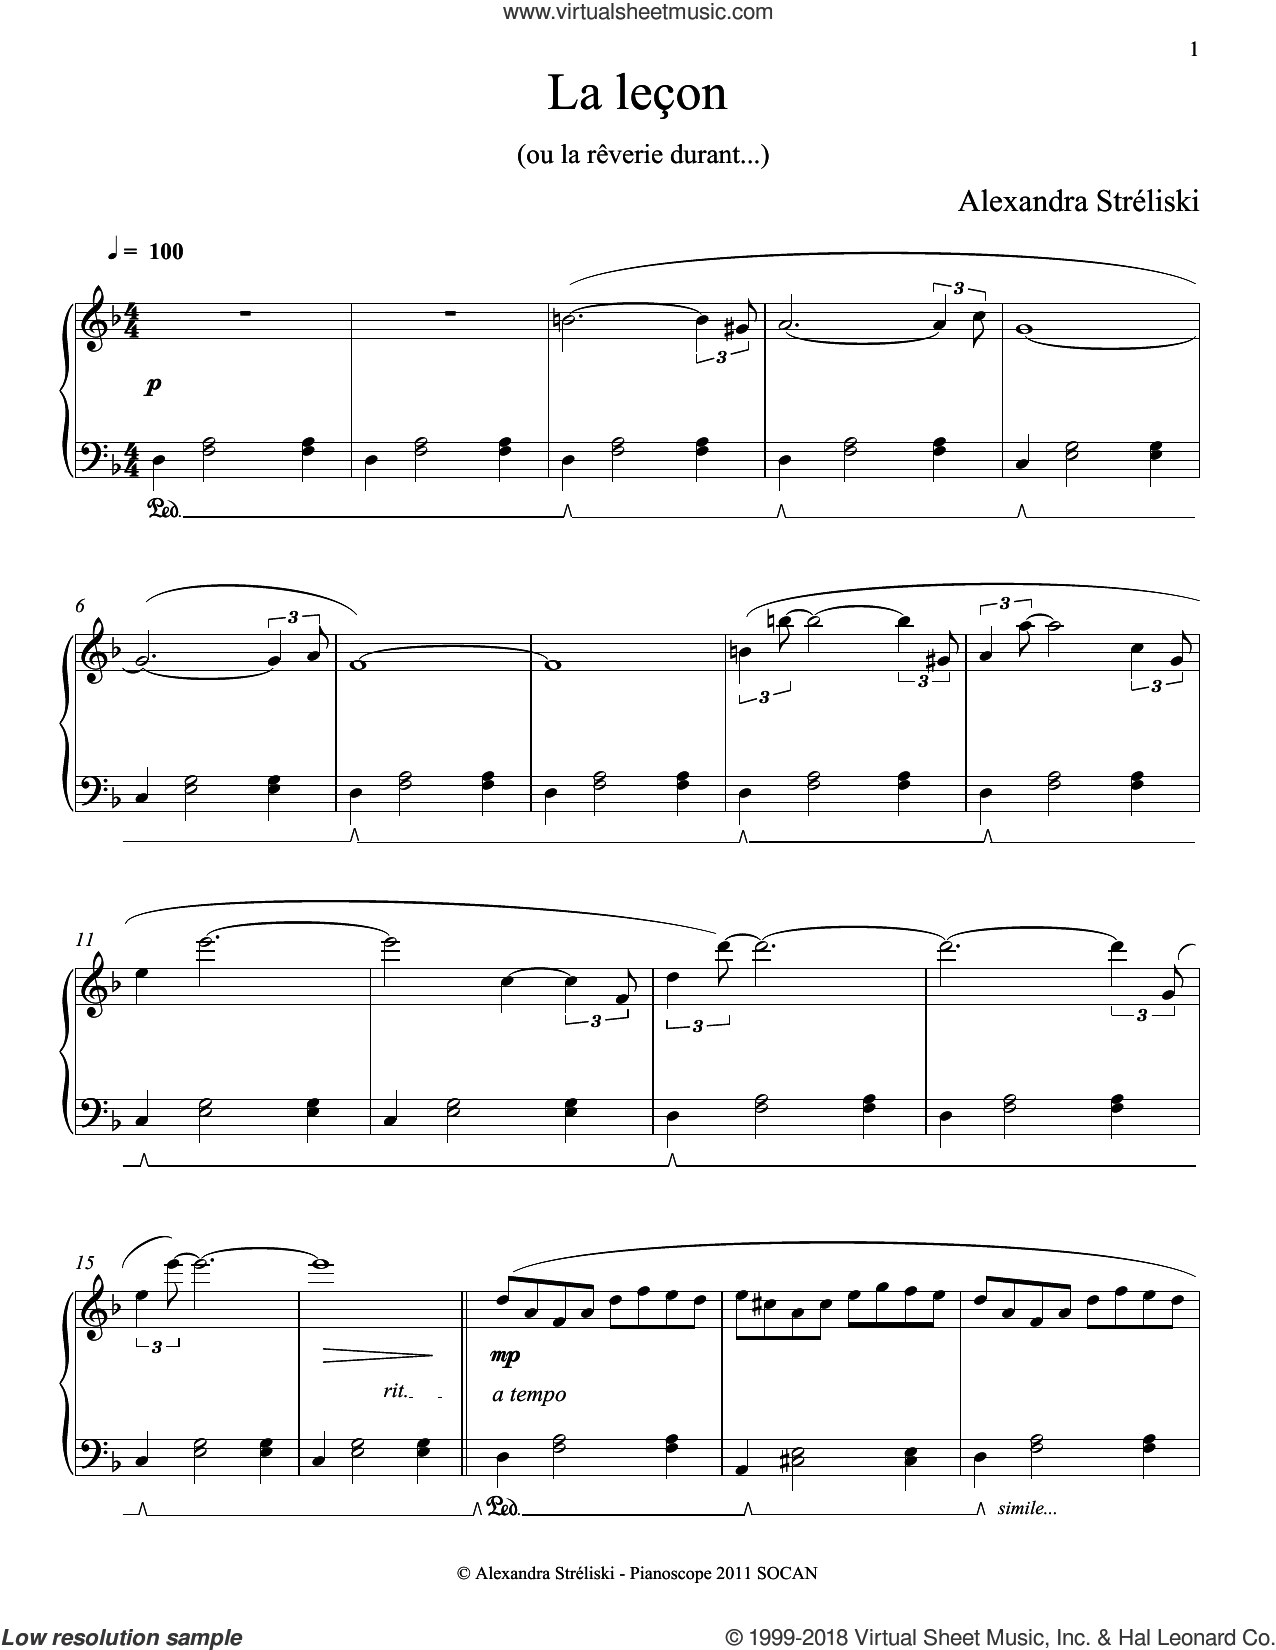 La lecon sheet music for piano solo by Alexandra Streliski, classical score, intermediate